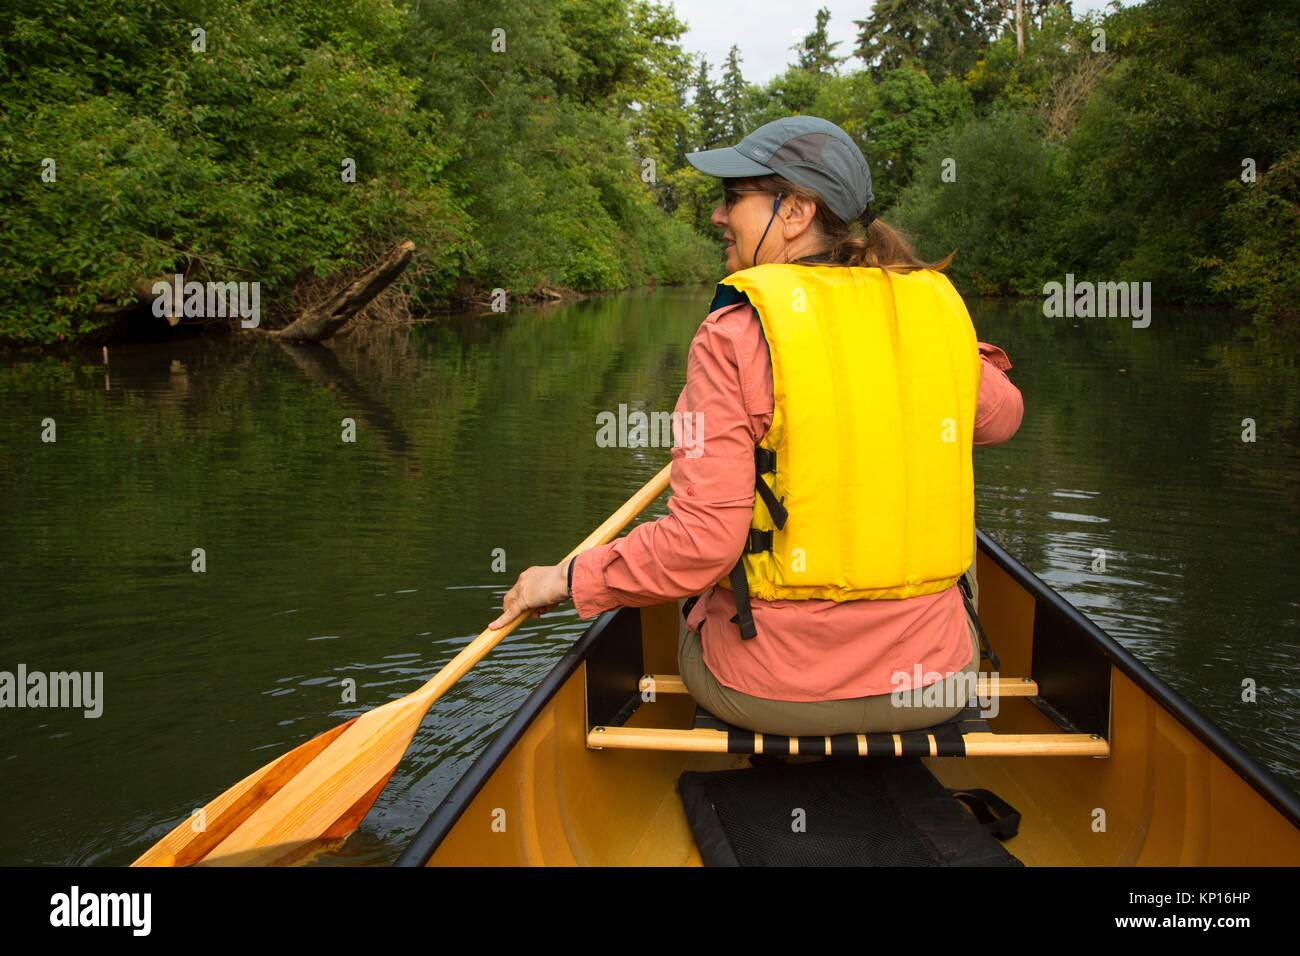 Canoeing the Luckiamute River, Luckiamute Landing State Park, Oregon. - Stock Image